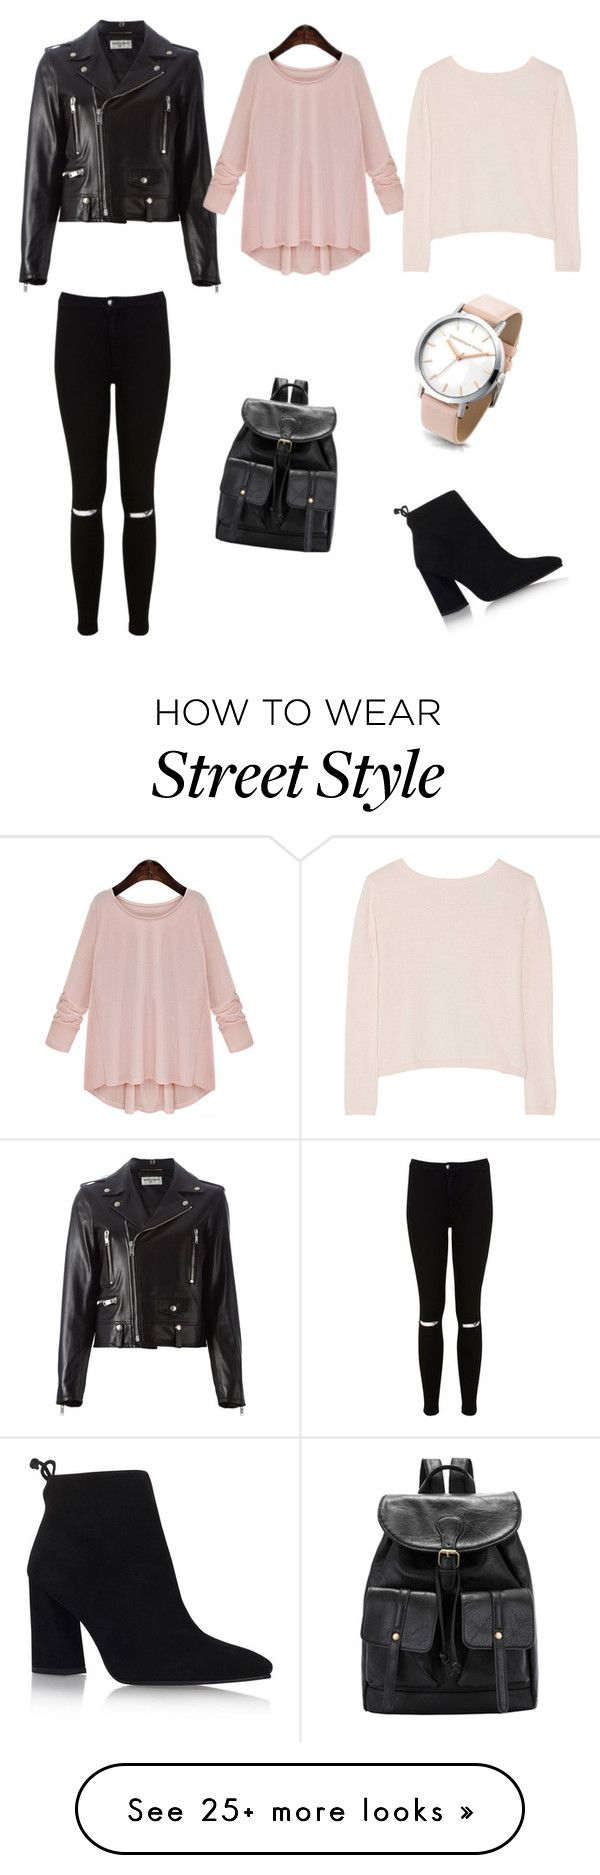 """Winter Street Style"" by hailie-ann-1 on Polyvore featuring Yves Saint Laurent, Miss Selfridge, Banjo & Matilda and Stuart Weitzman"